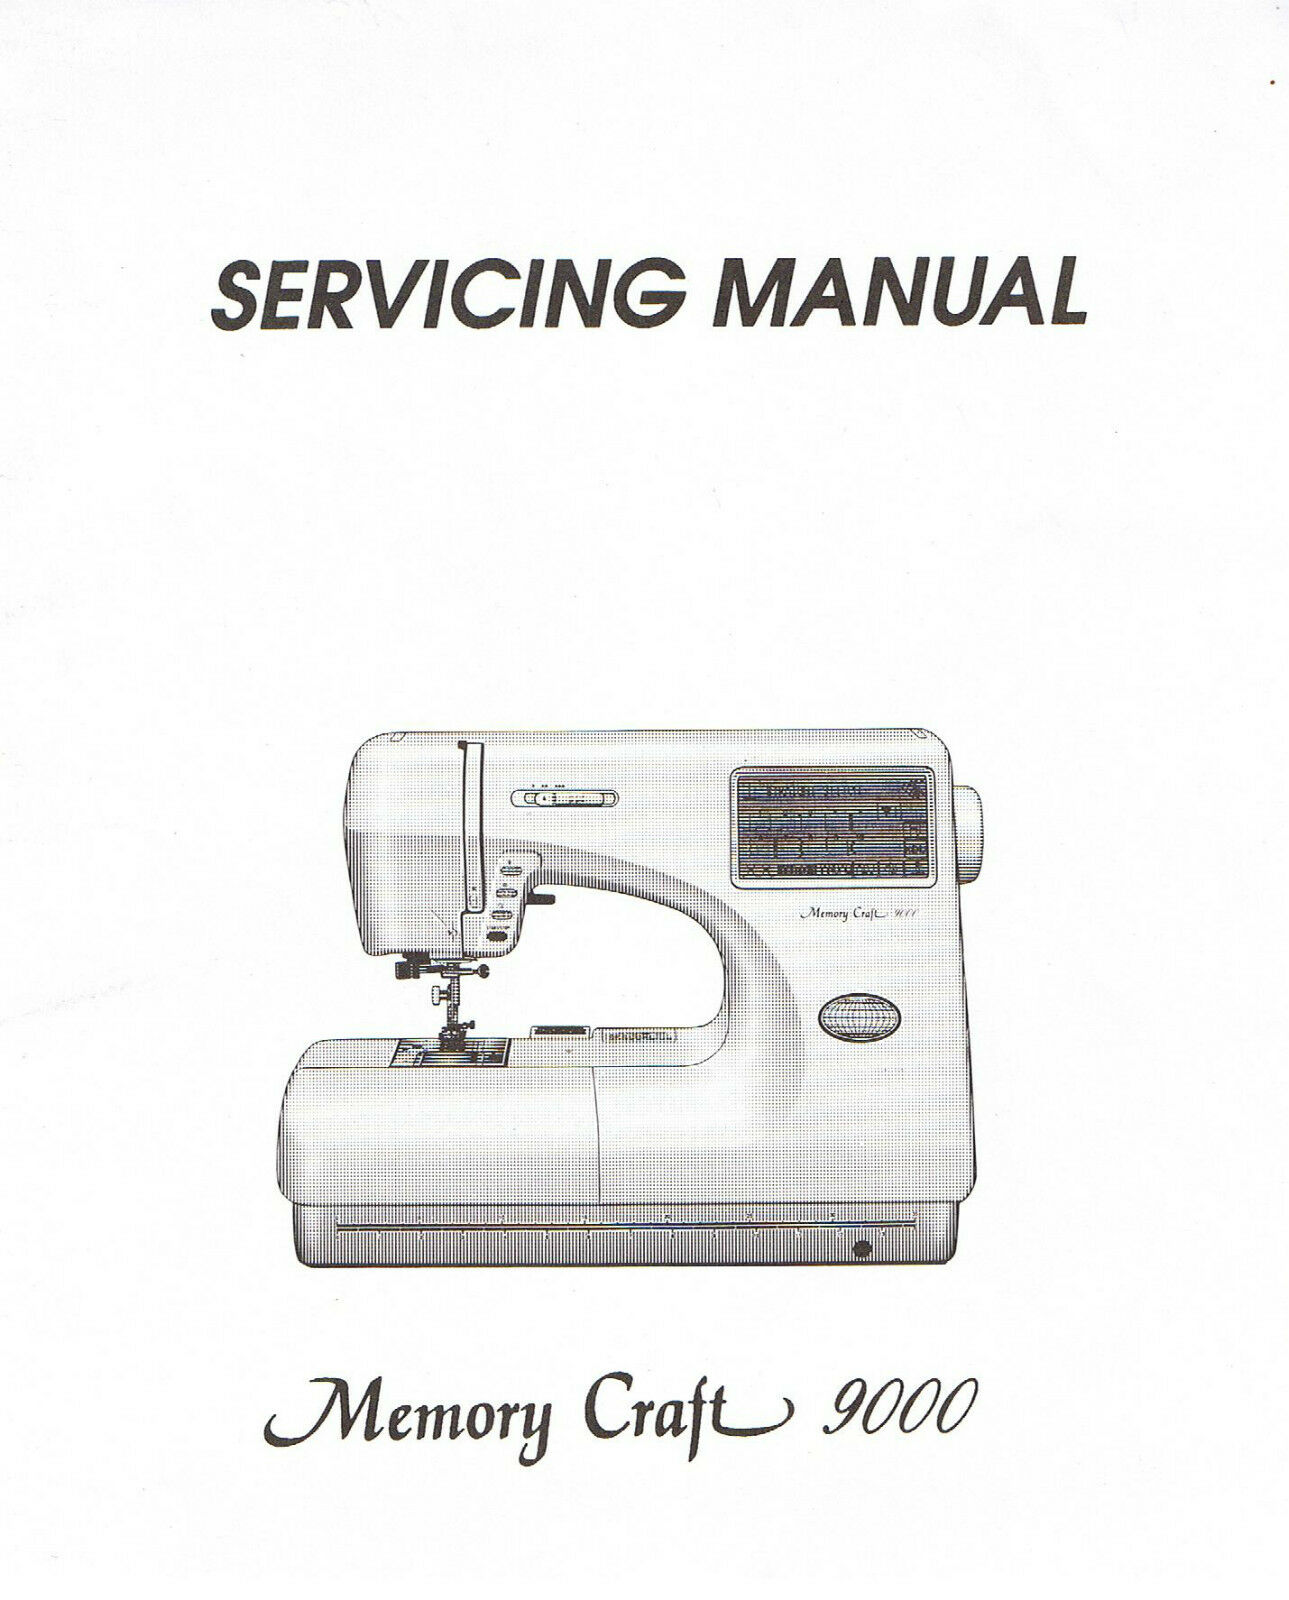 Janome Memory Craft 9000 Sewing Machine Service Repair Manual + Parts List  1 of 1Only 5 available ...